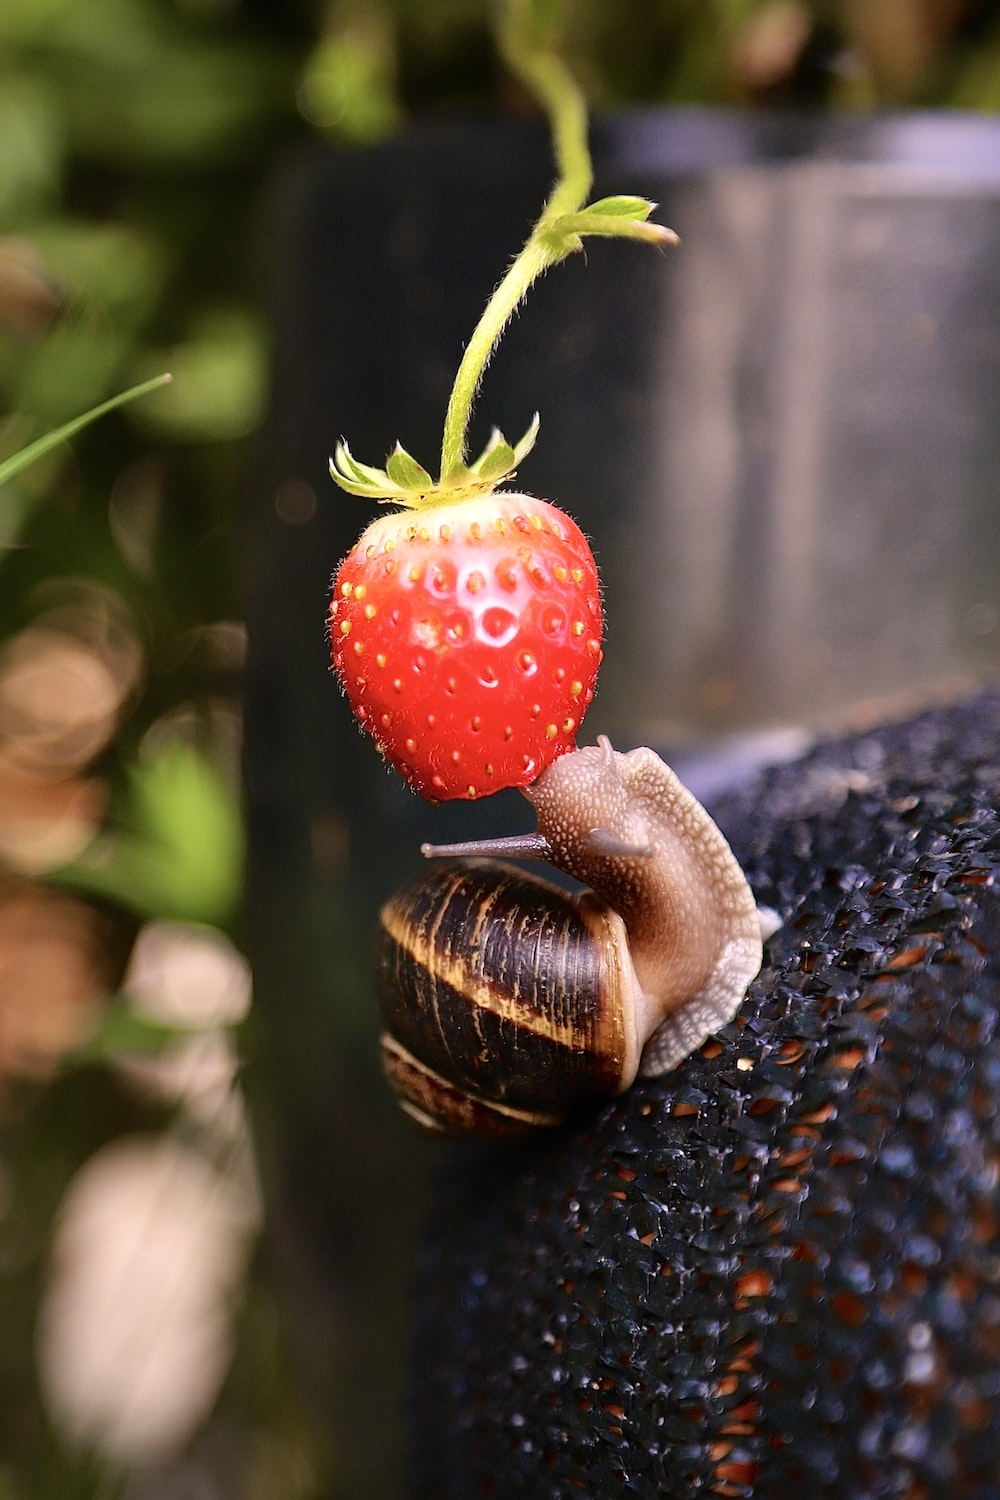 strawberry fruit in close up photography